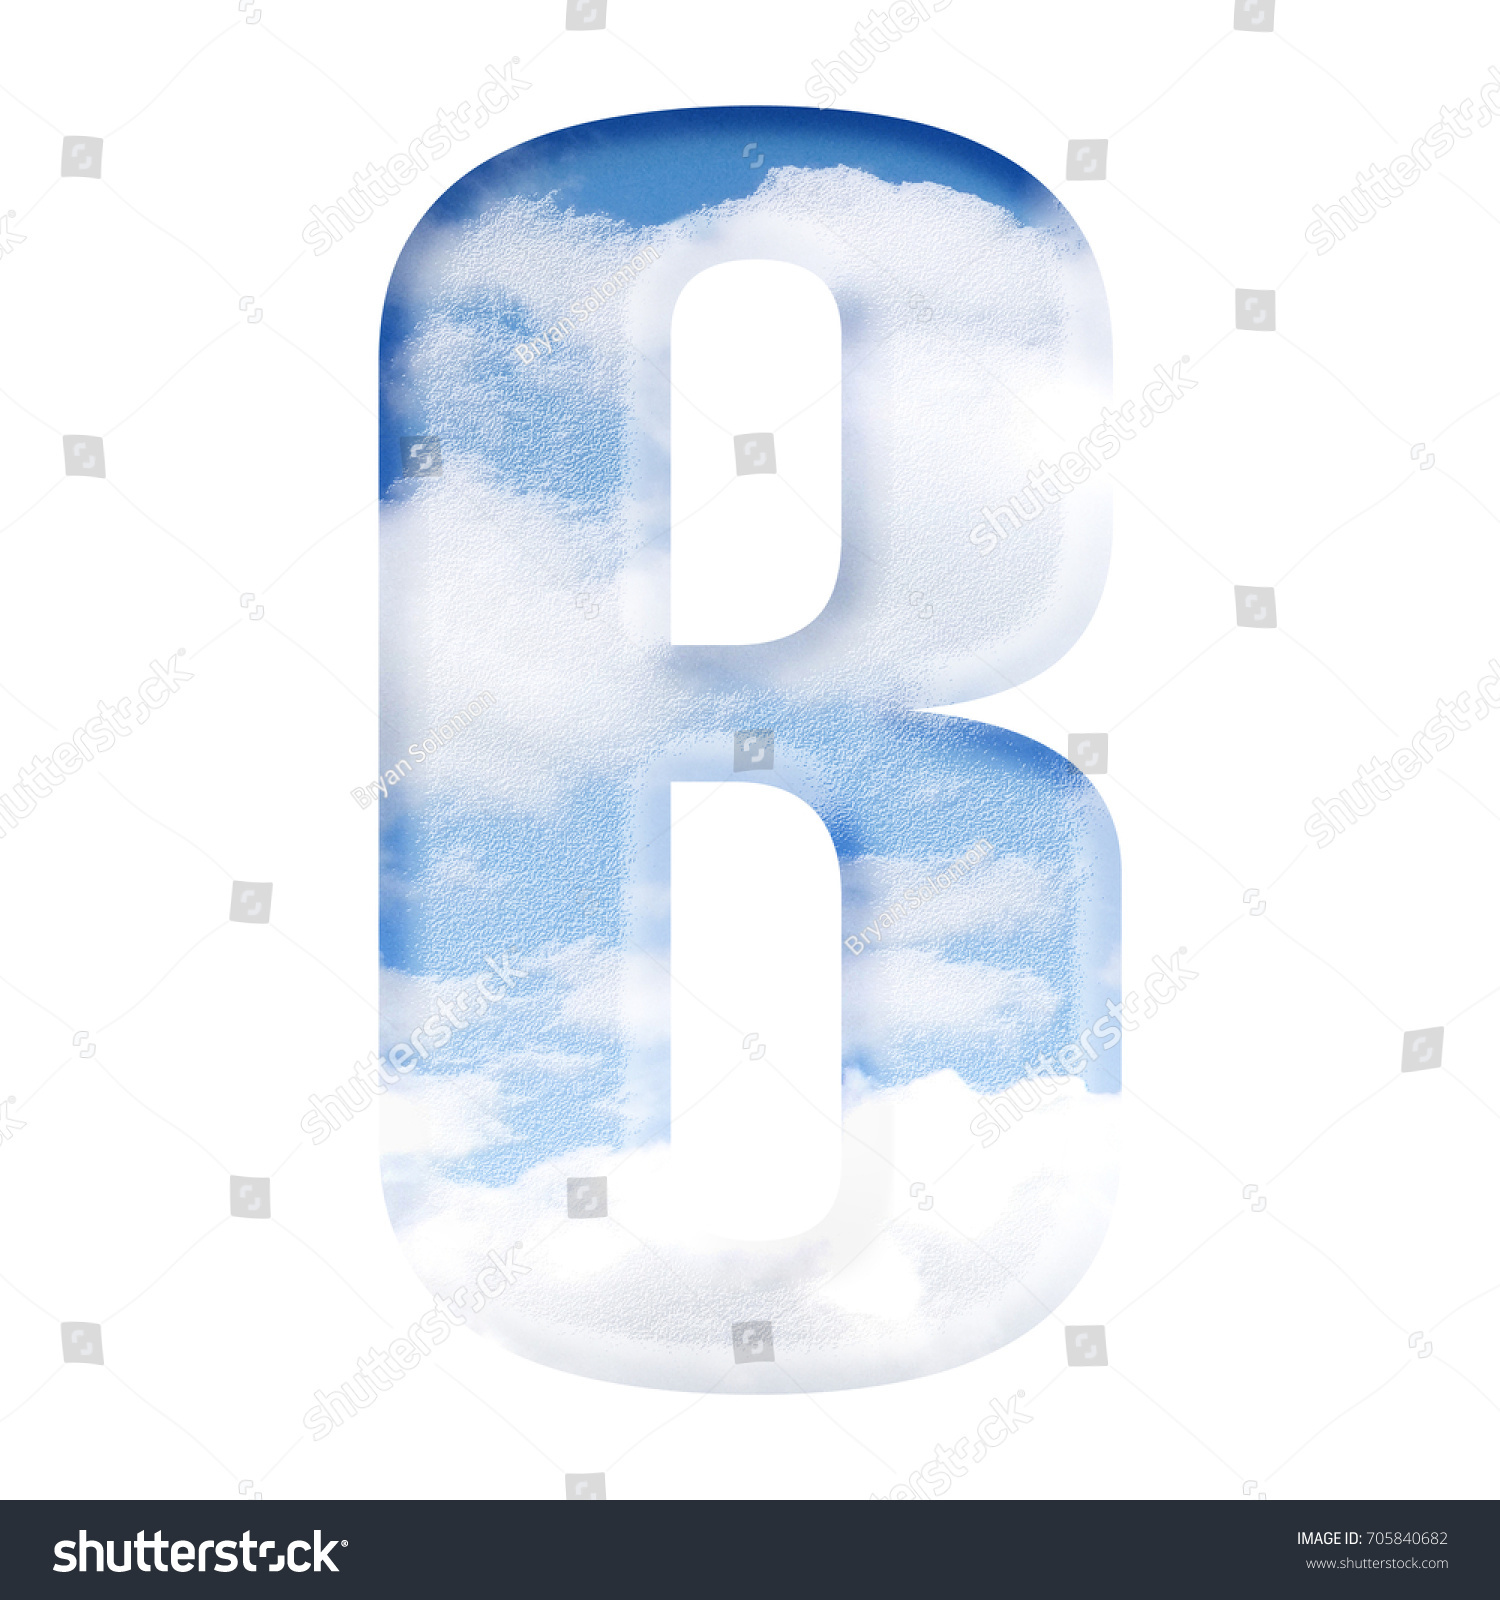 Image result for letter B dream